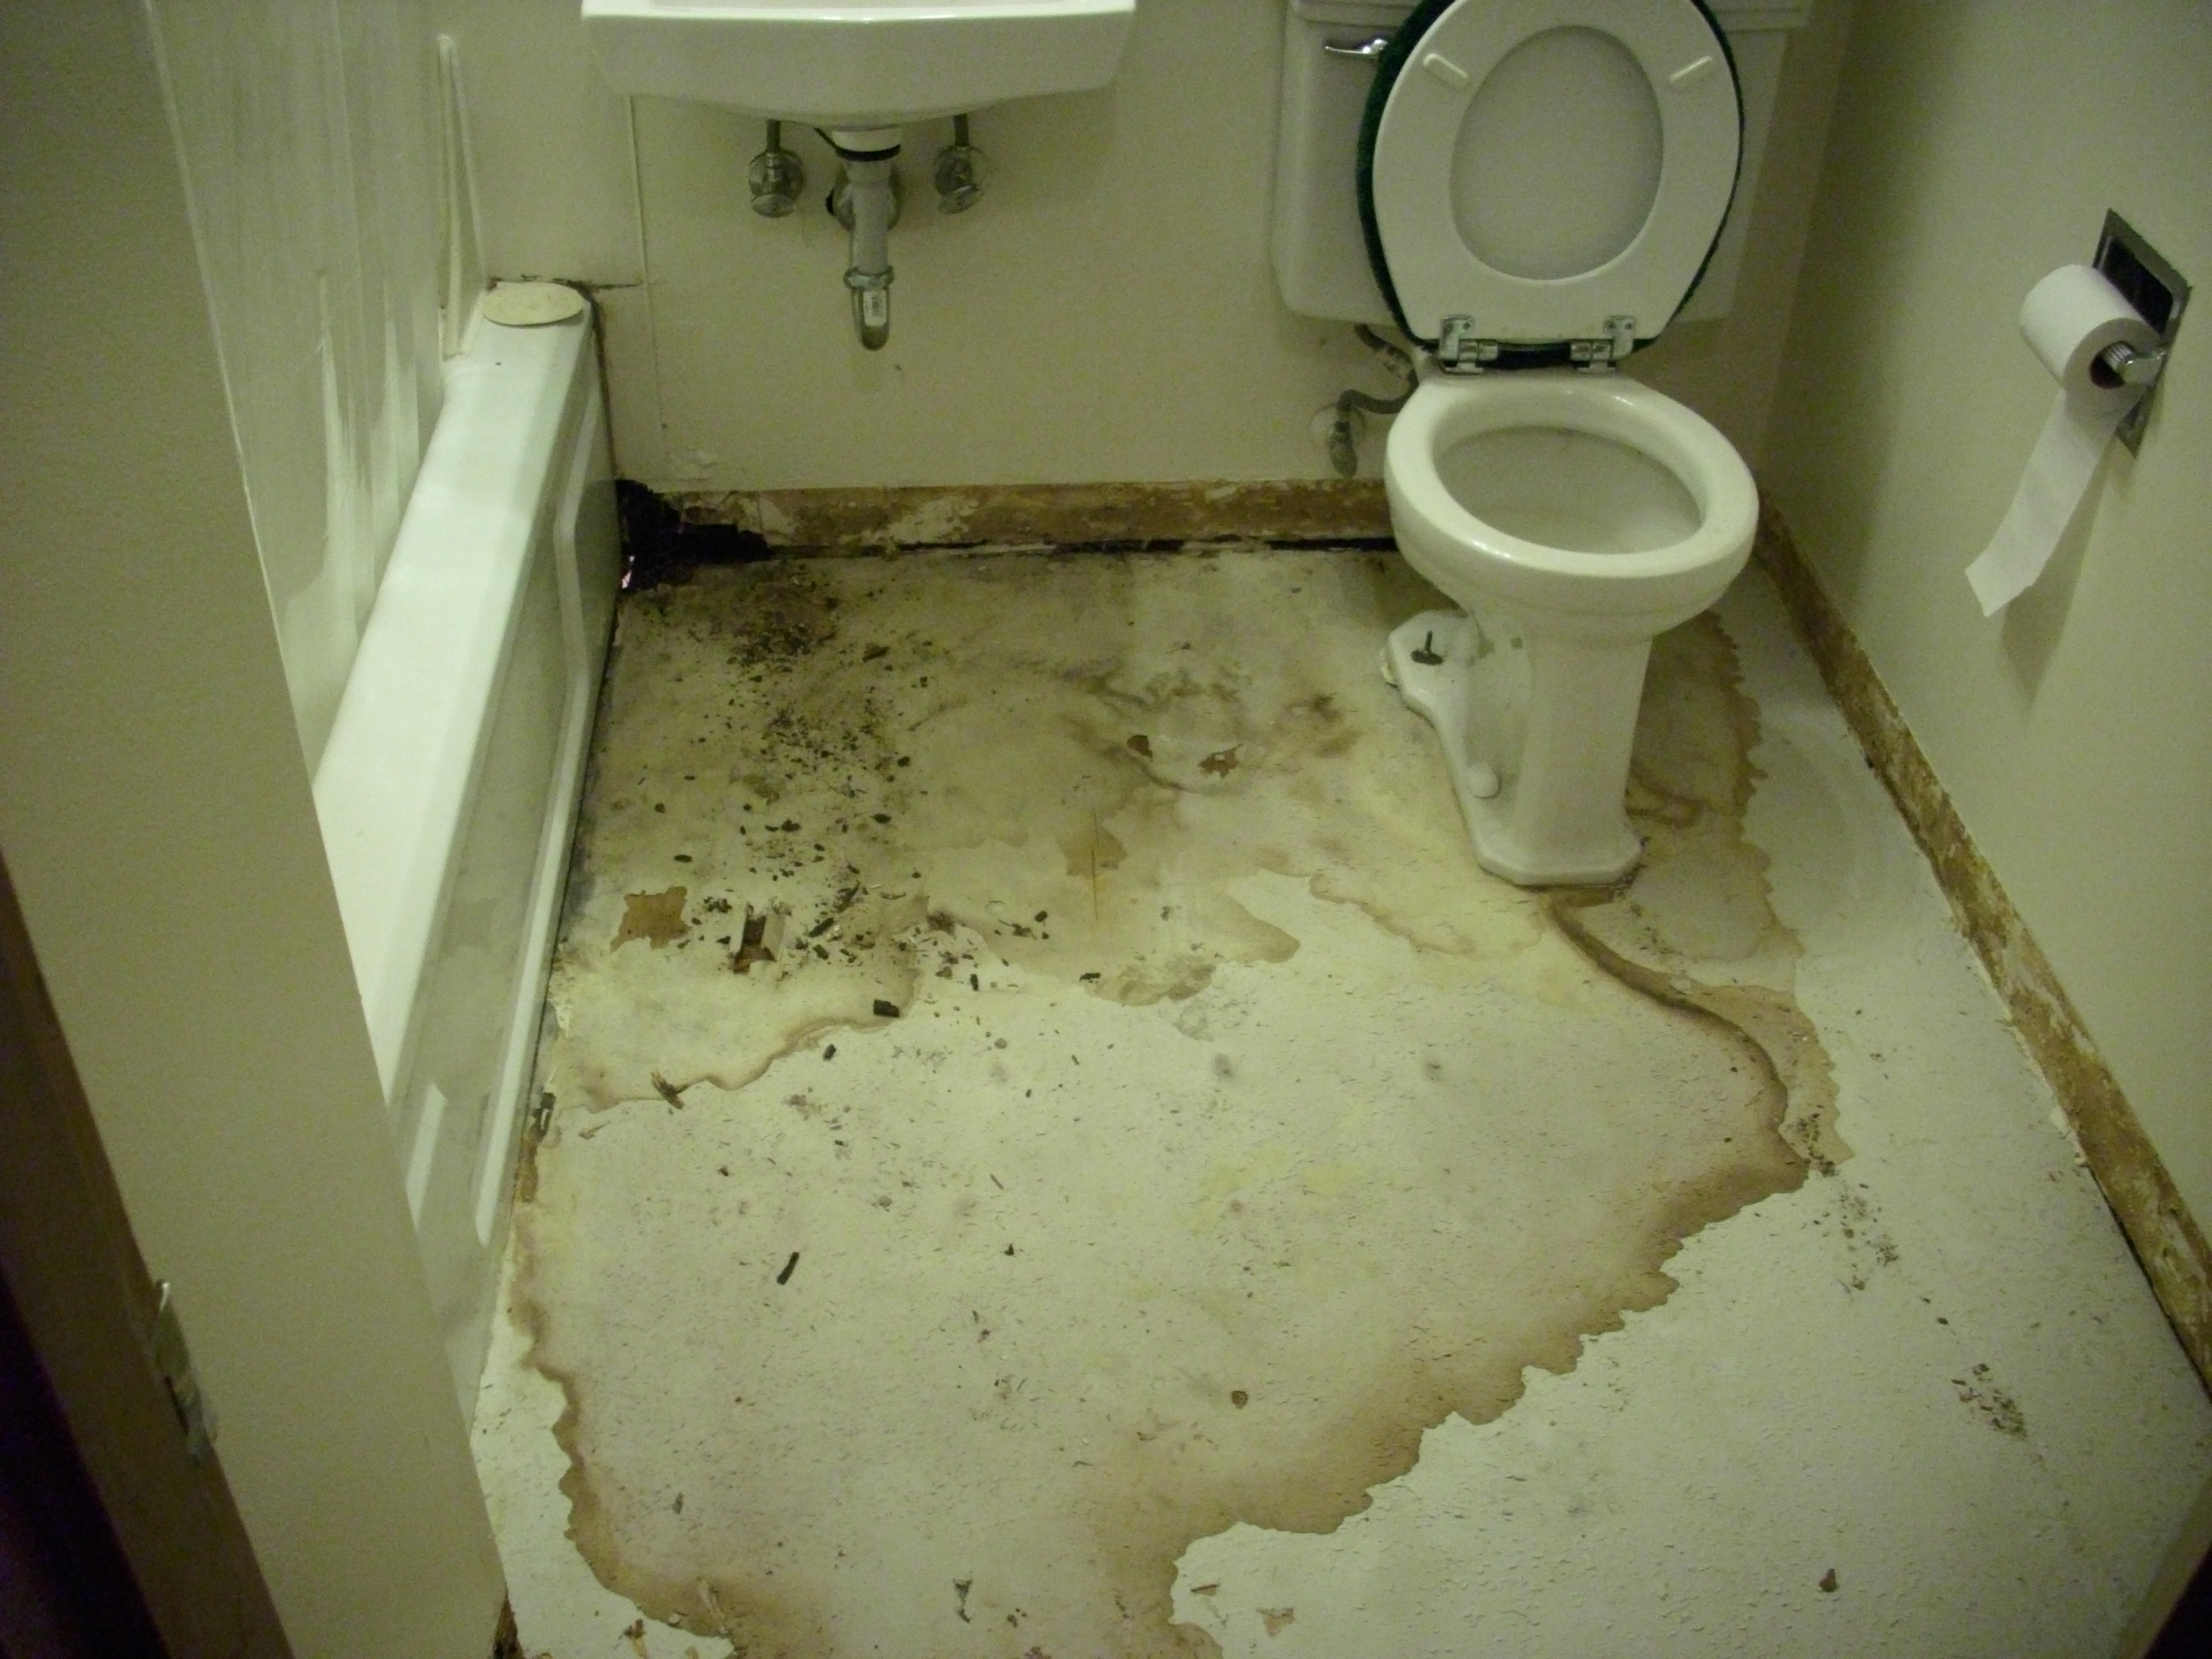 Bathtub Floor Damage - Home Repair Tips and Advice For Home Owners